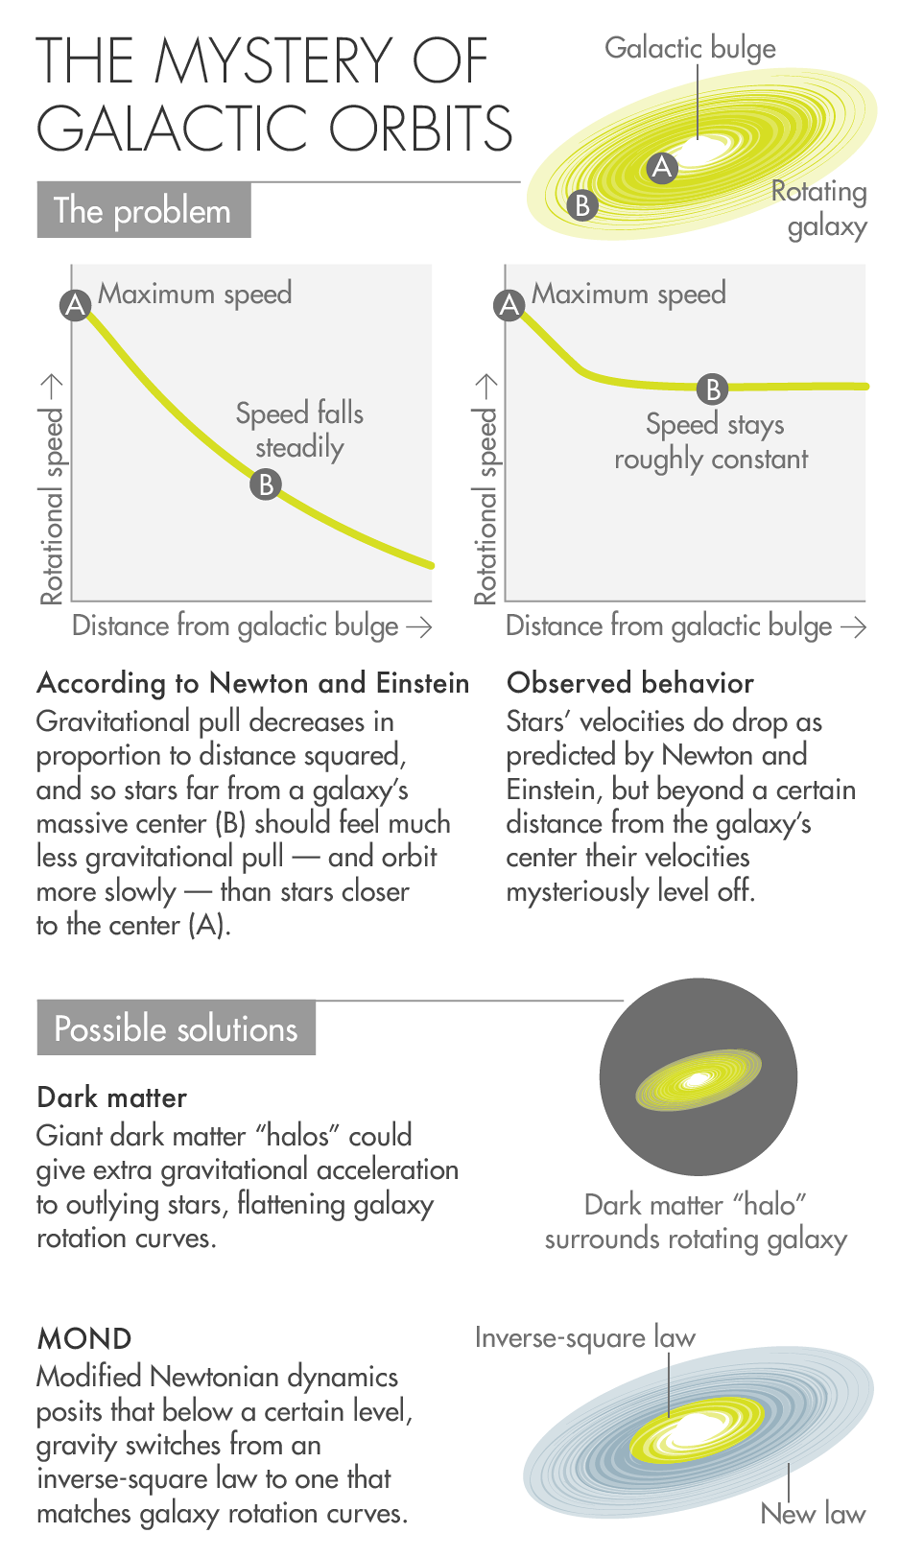 Infographic: THE MYSTERY OF GALACTIC ORBITS